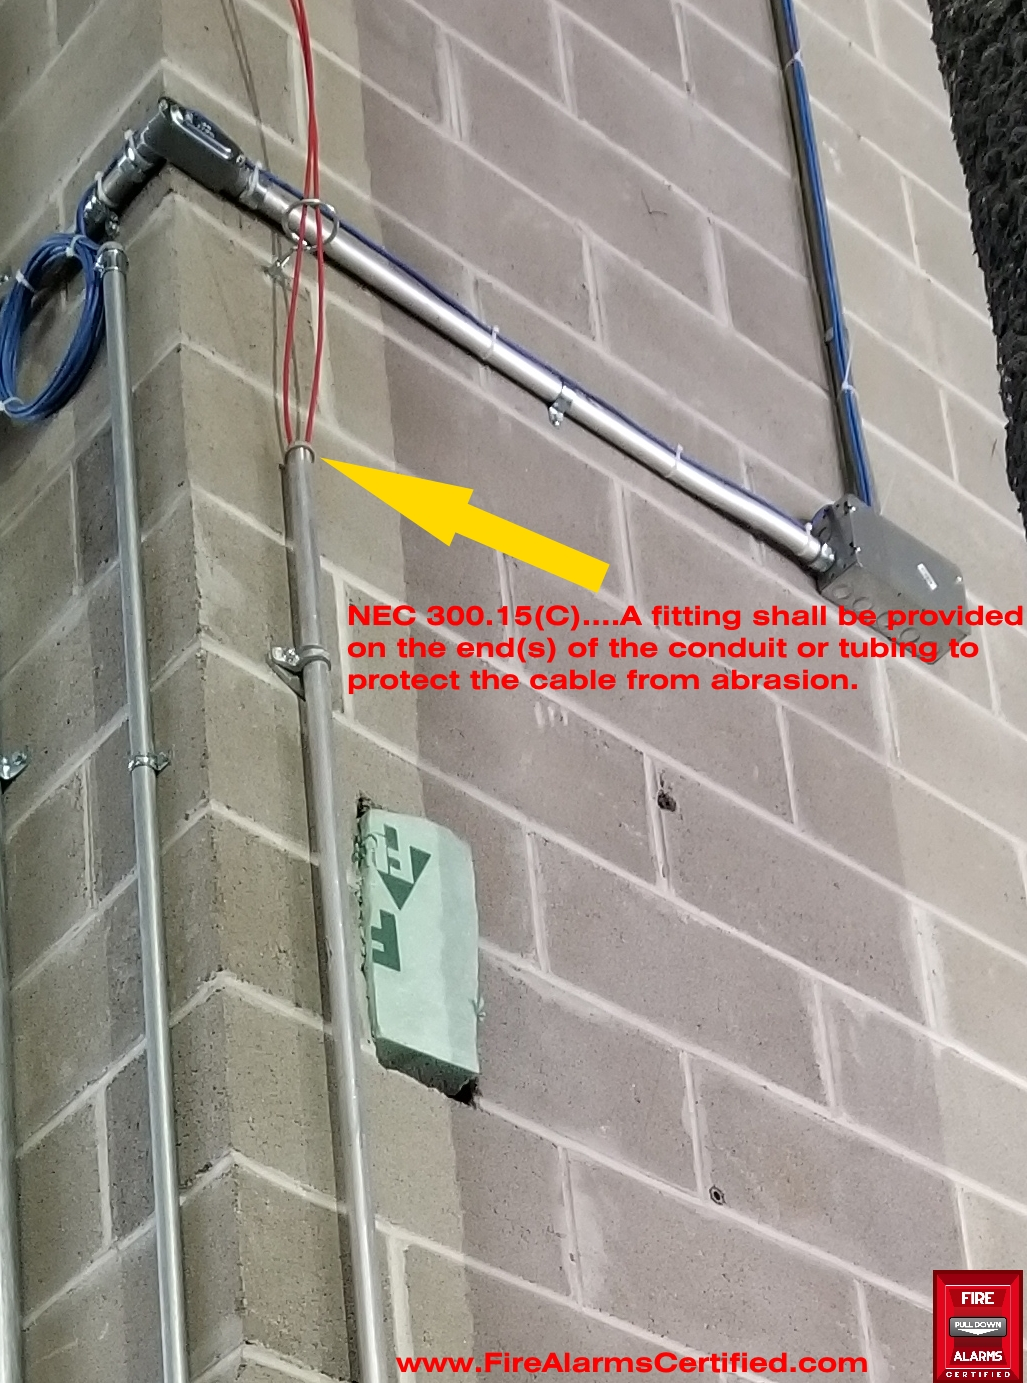 hight resolution of fire alarm cables height requirement nicet certification exam